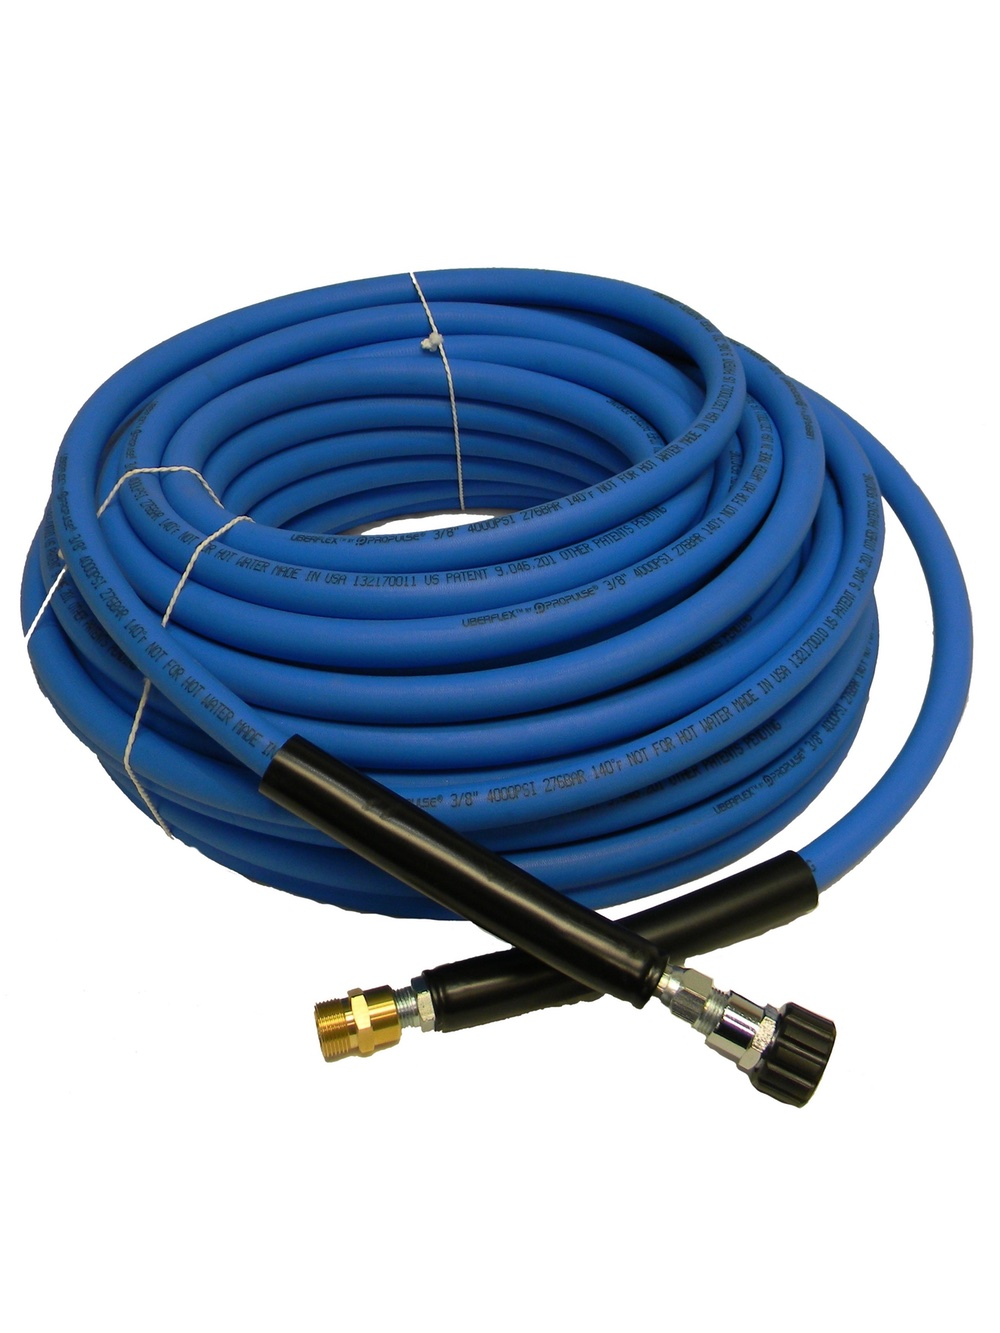 Uberflex Hose for Solar Panel Cleaning.jpg